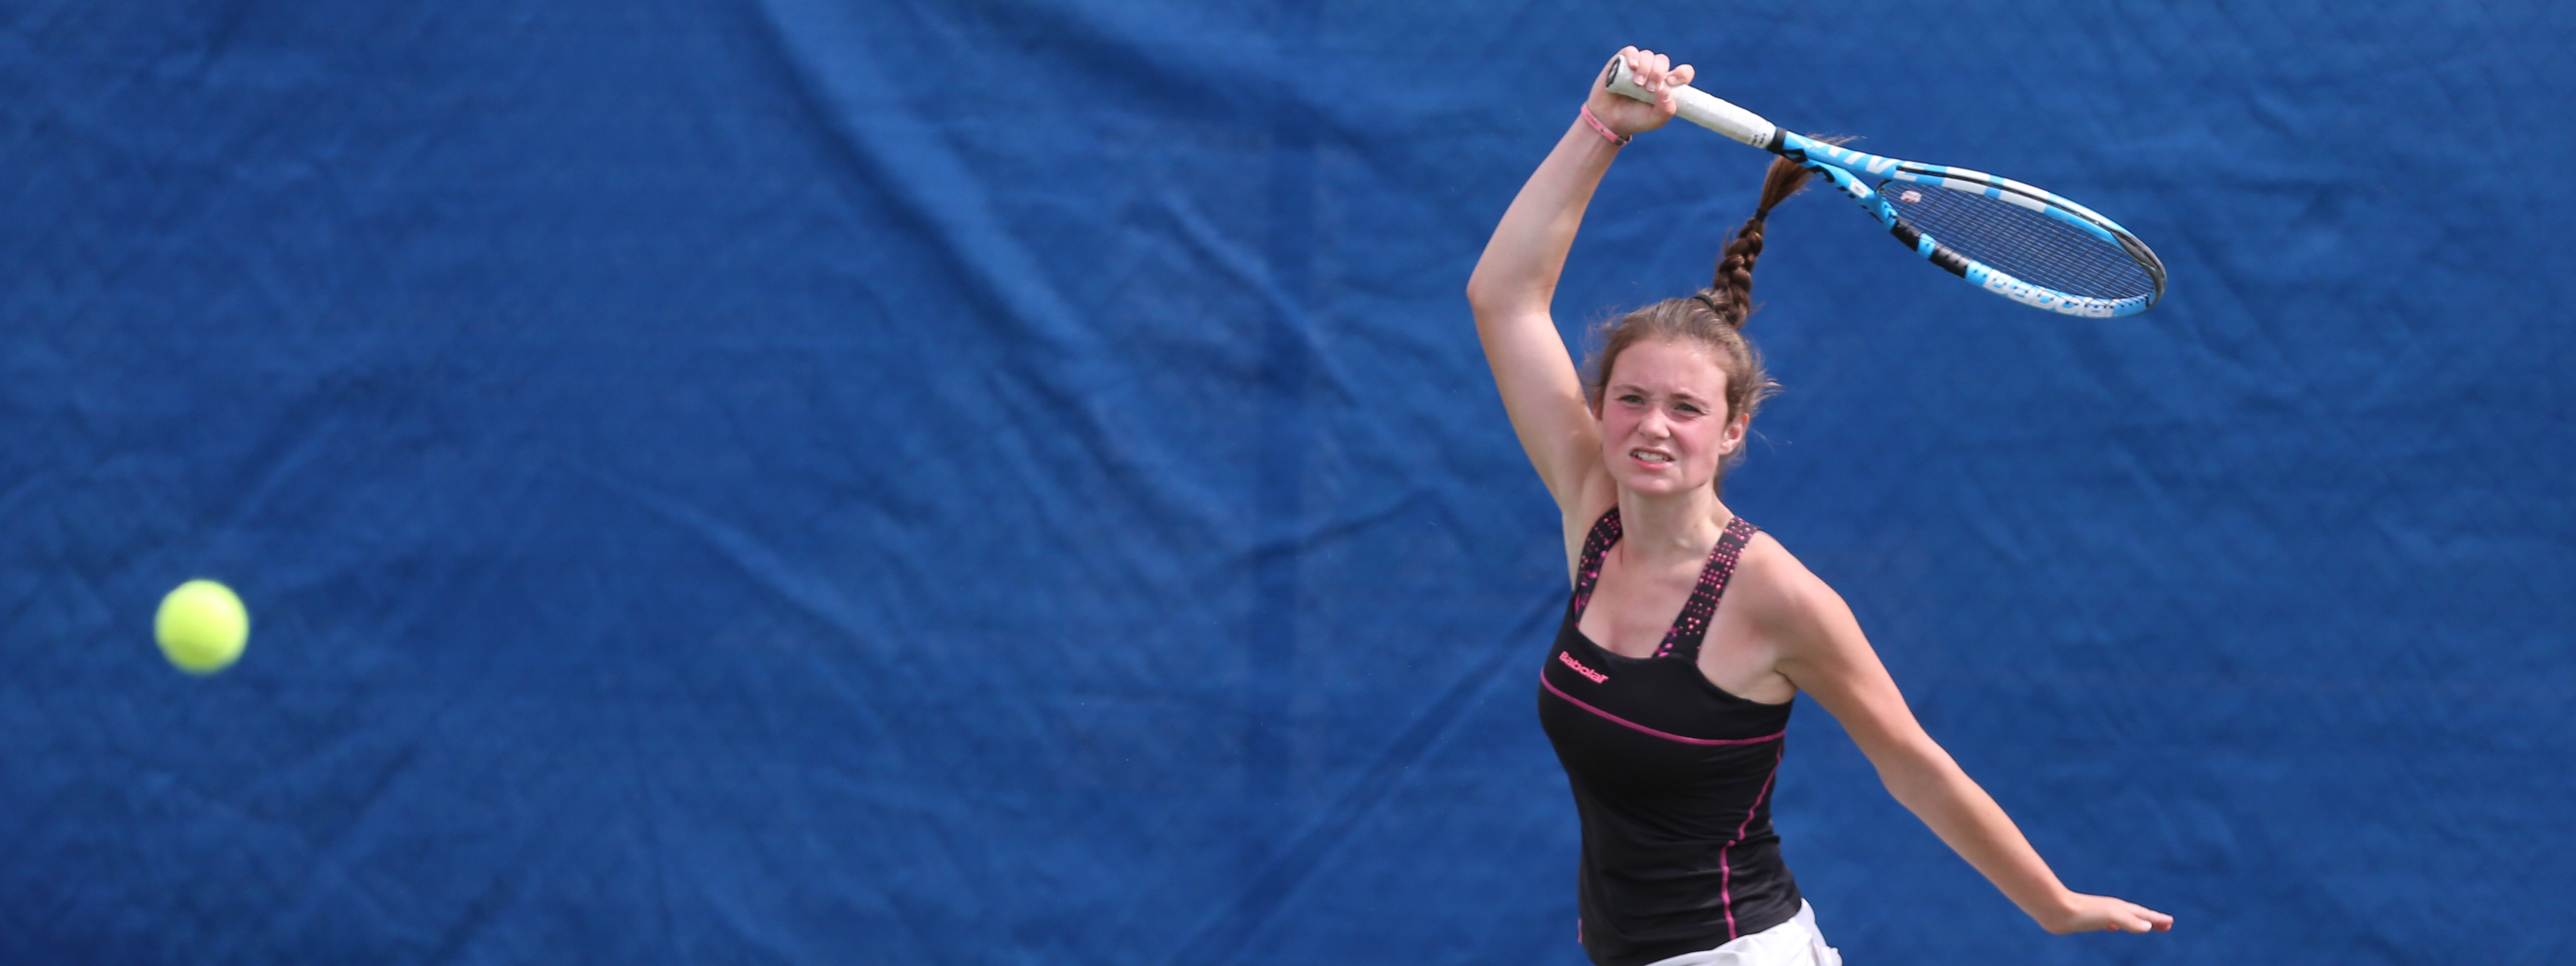 A girl prepares to hit a tennis forehand